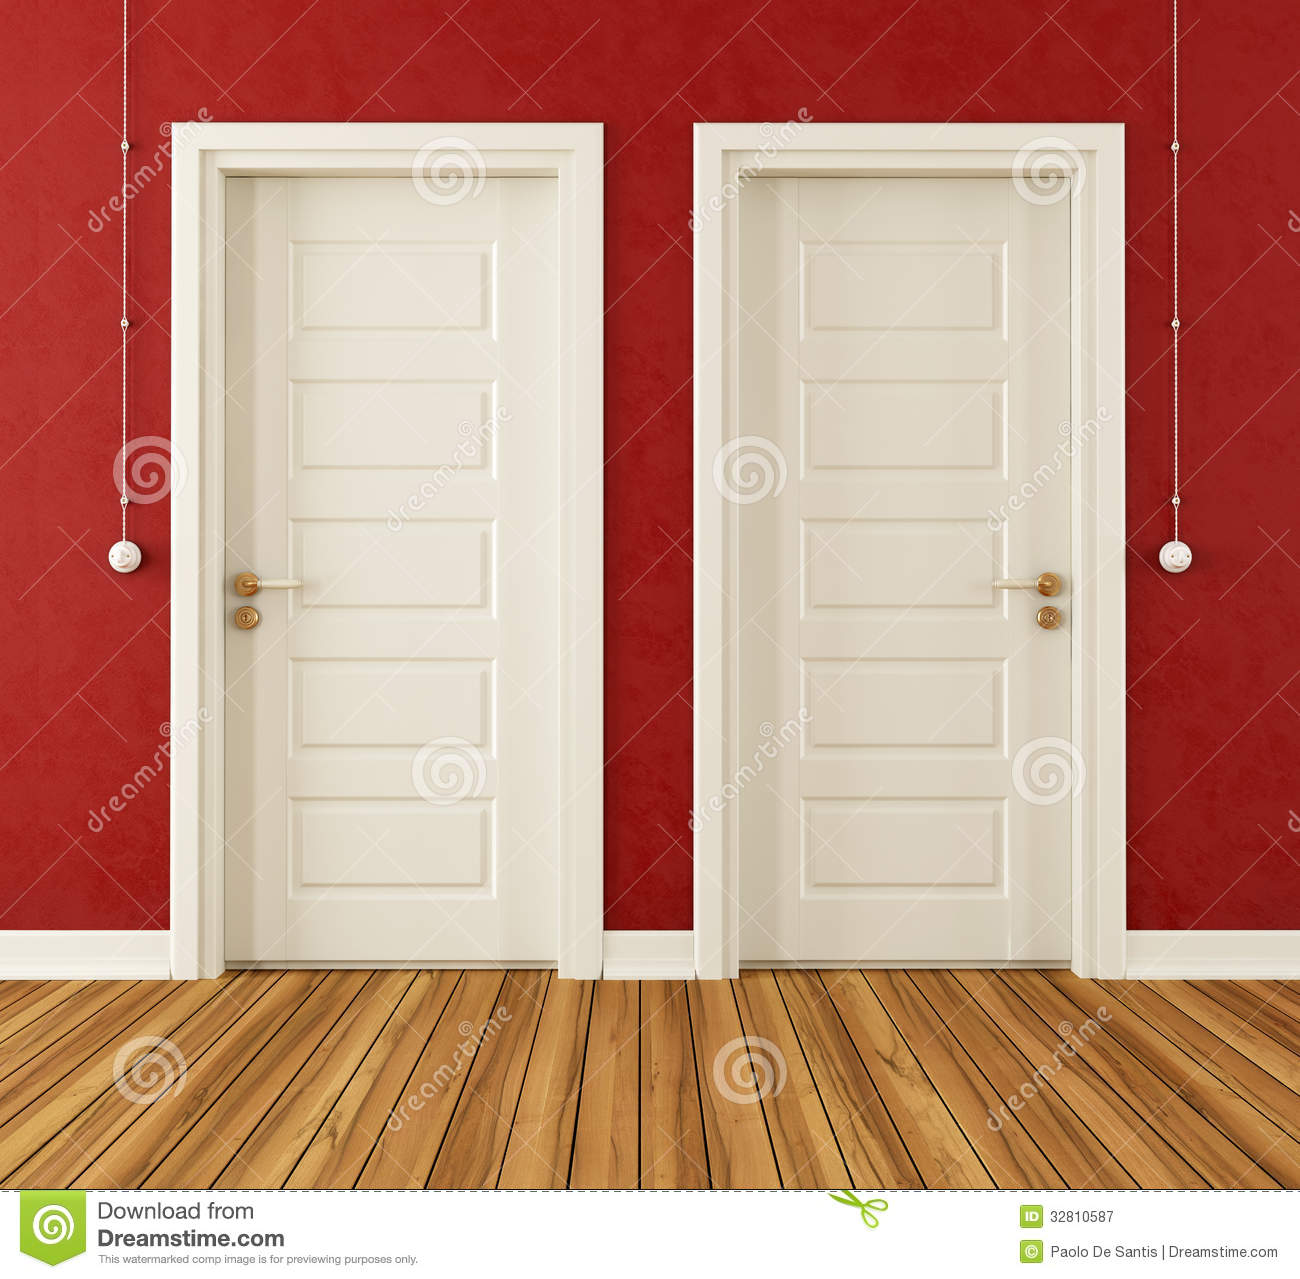 Stock Room Doors : Detail of two white doors royalty free stock photography